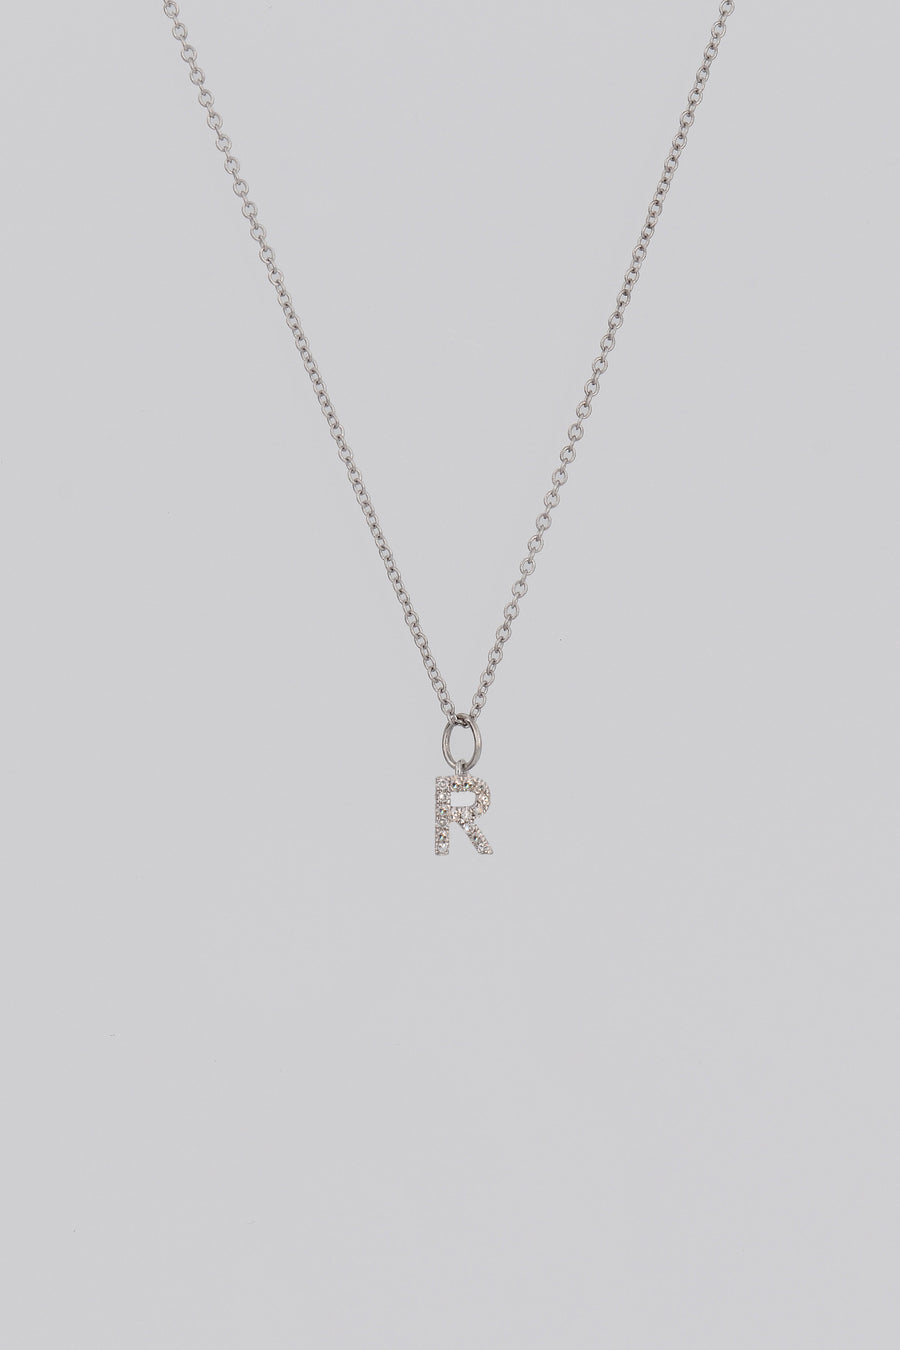 Alphabet necklace, Pave Initial Necklace